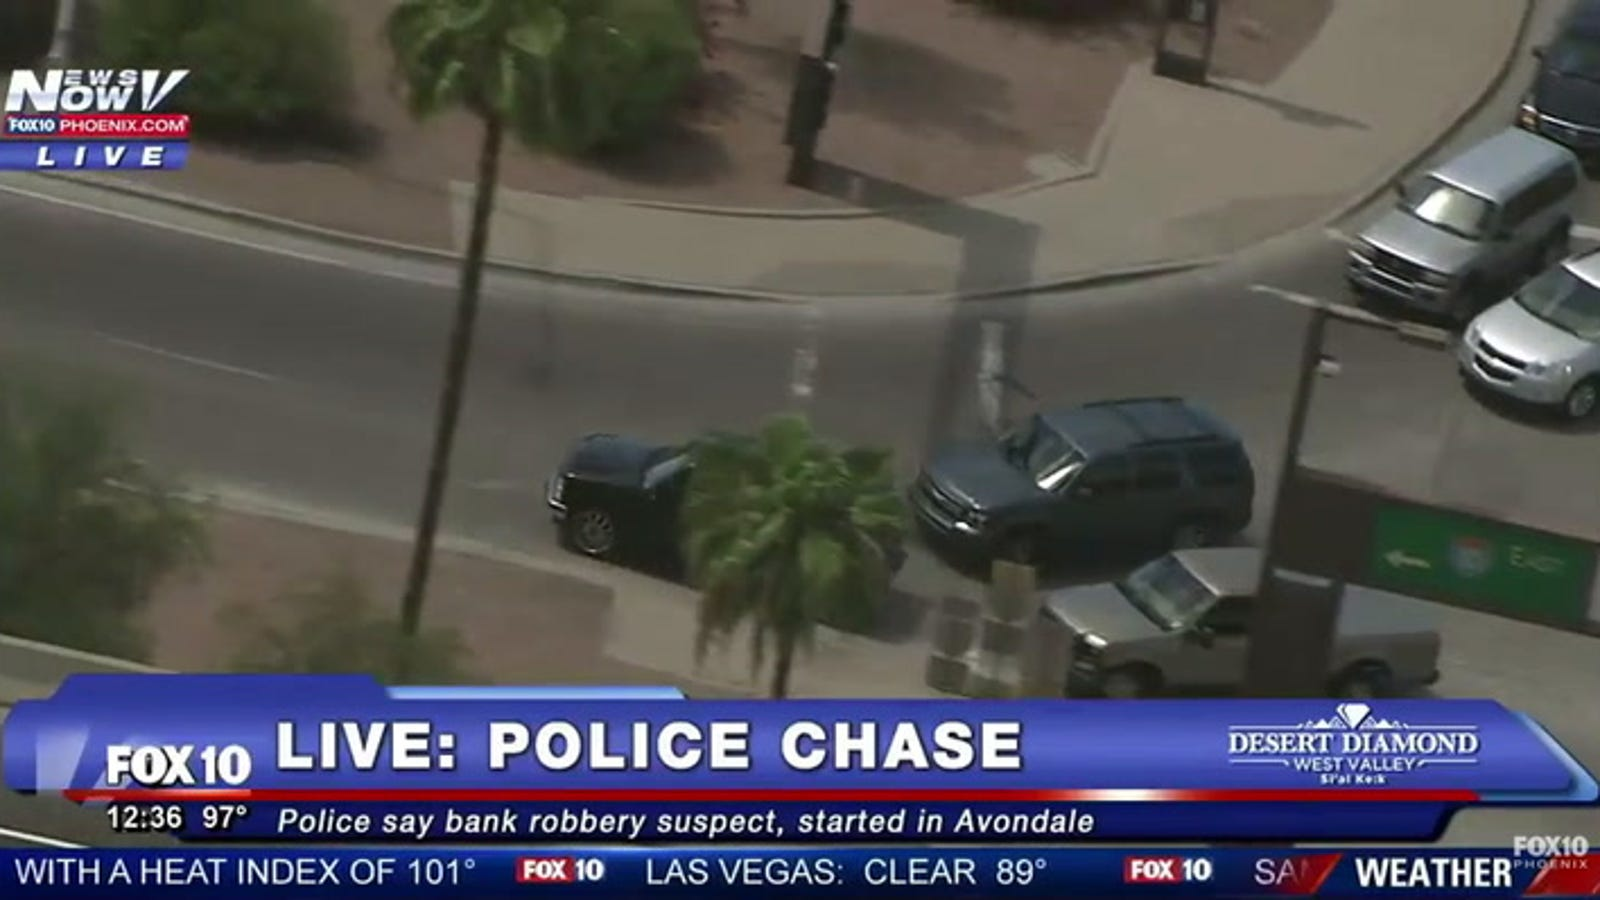 Arizona TV Station Airs Chase That Ends With Police Shooting